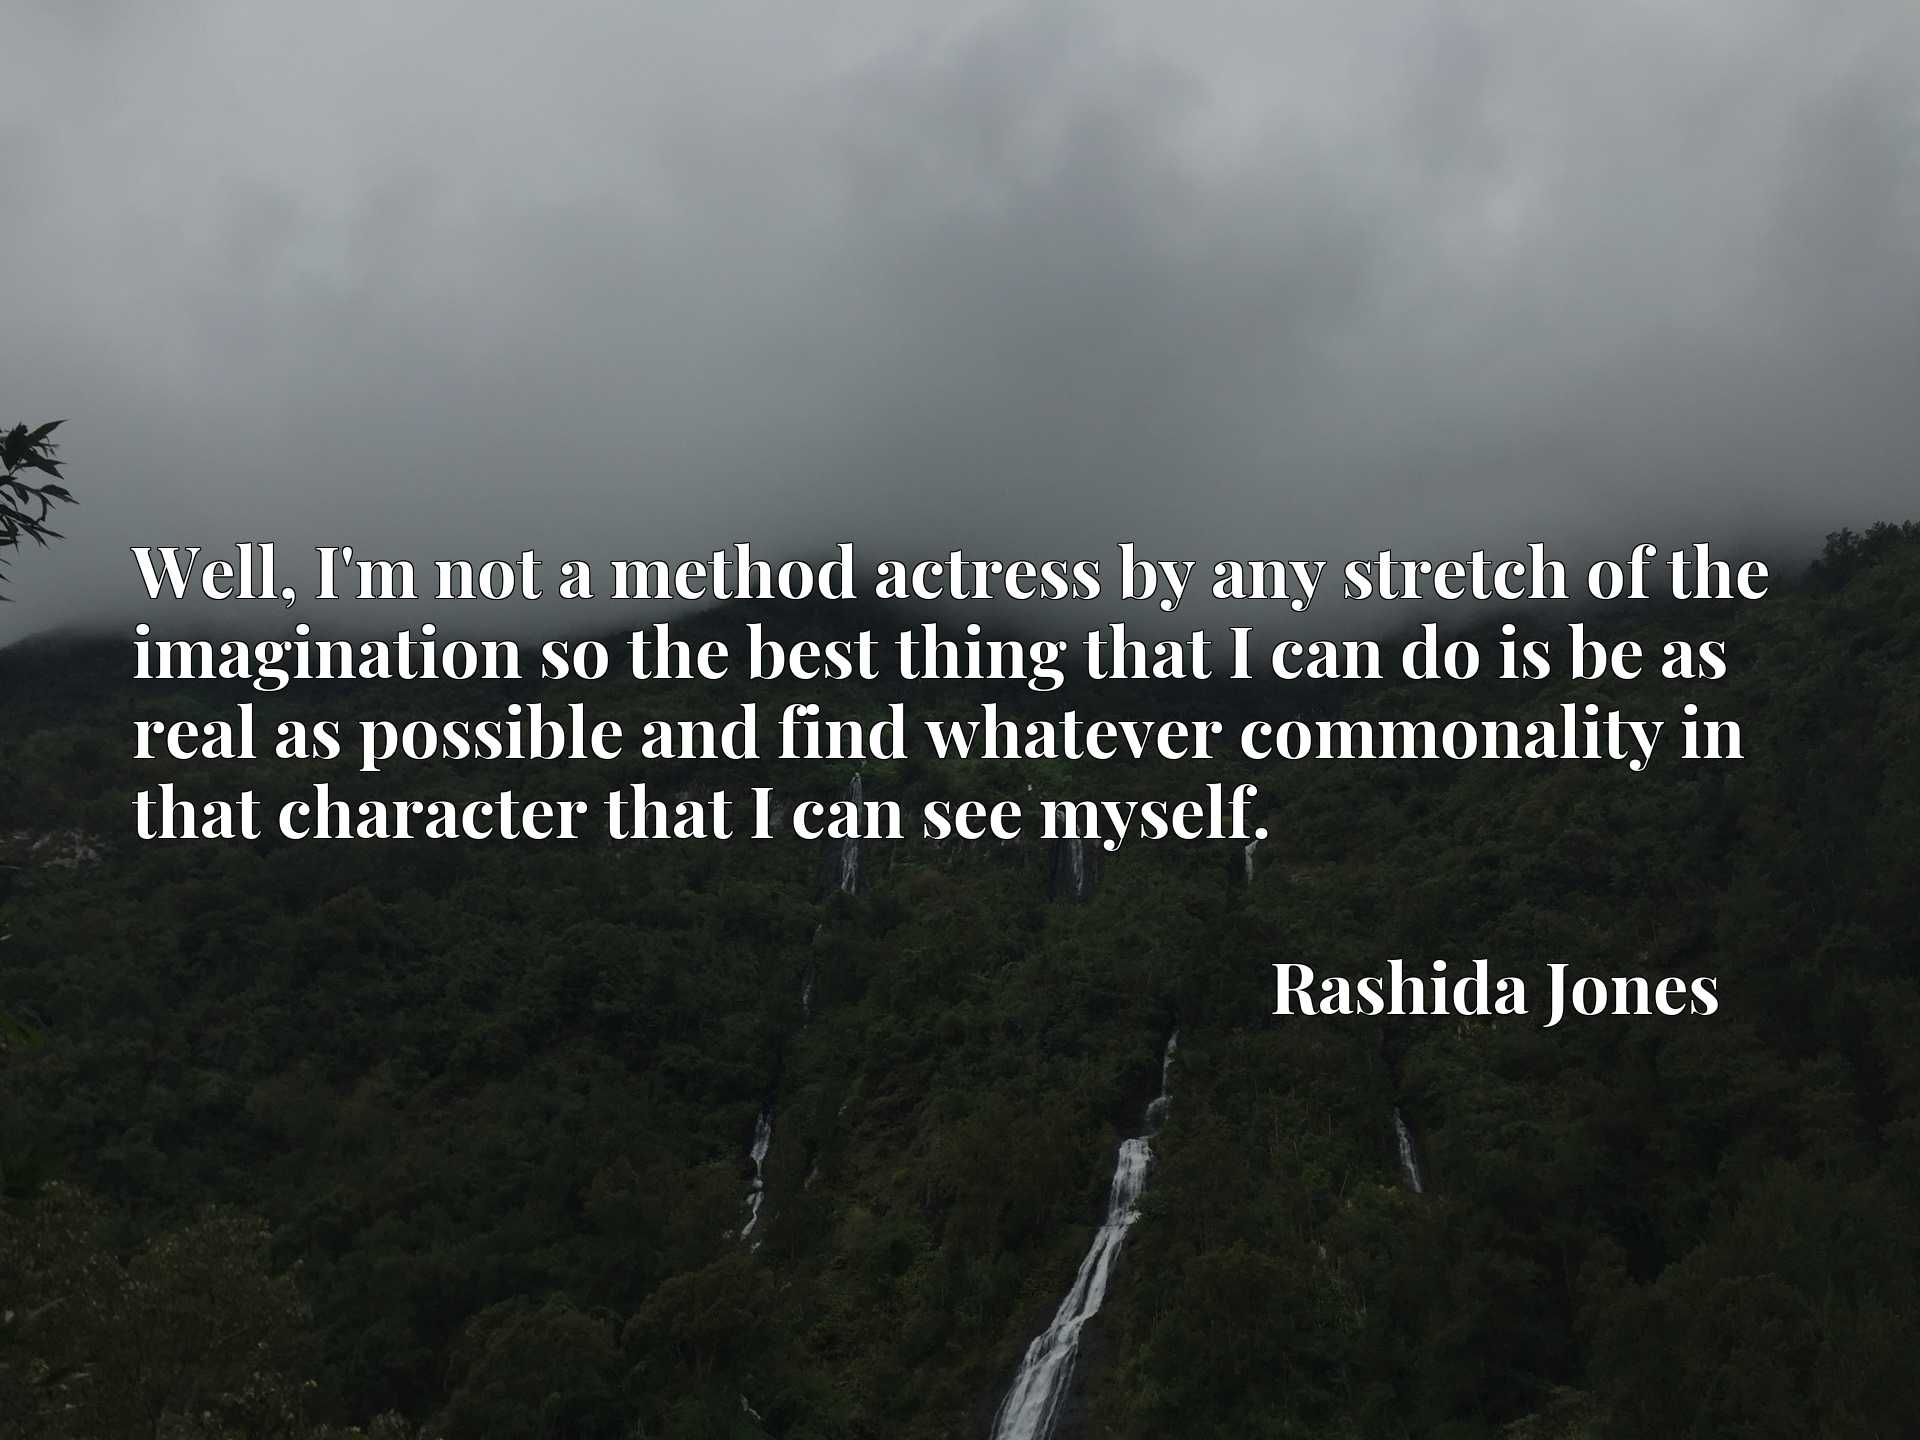 Quote Picture :Well, I'm not a method actress by any stretch of the imagination so the best thing that I can do is be as real as possible and find whatever commonality in that character that I can see myself.